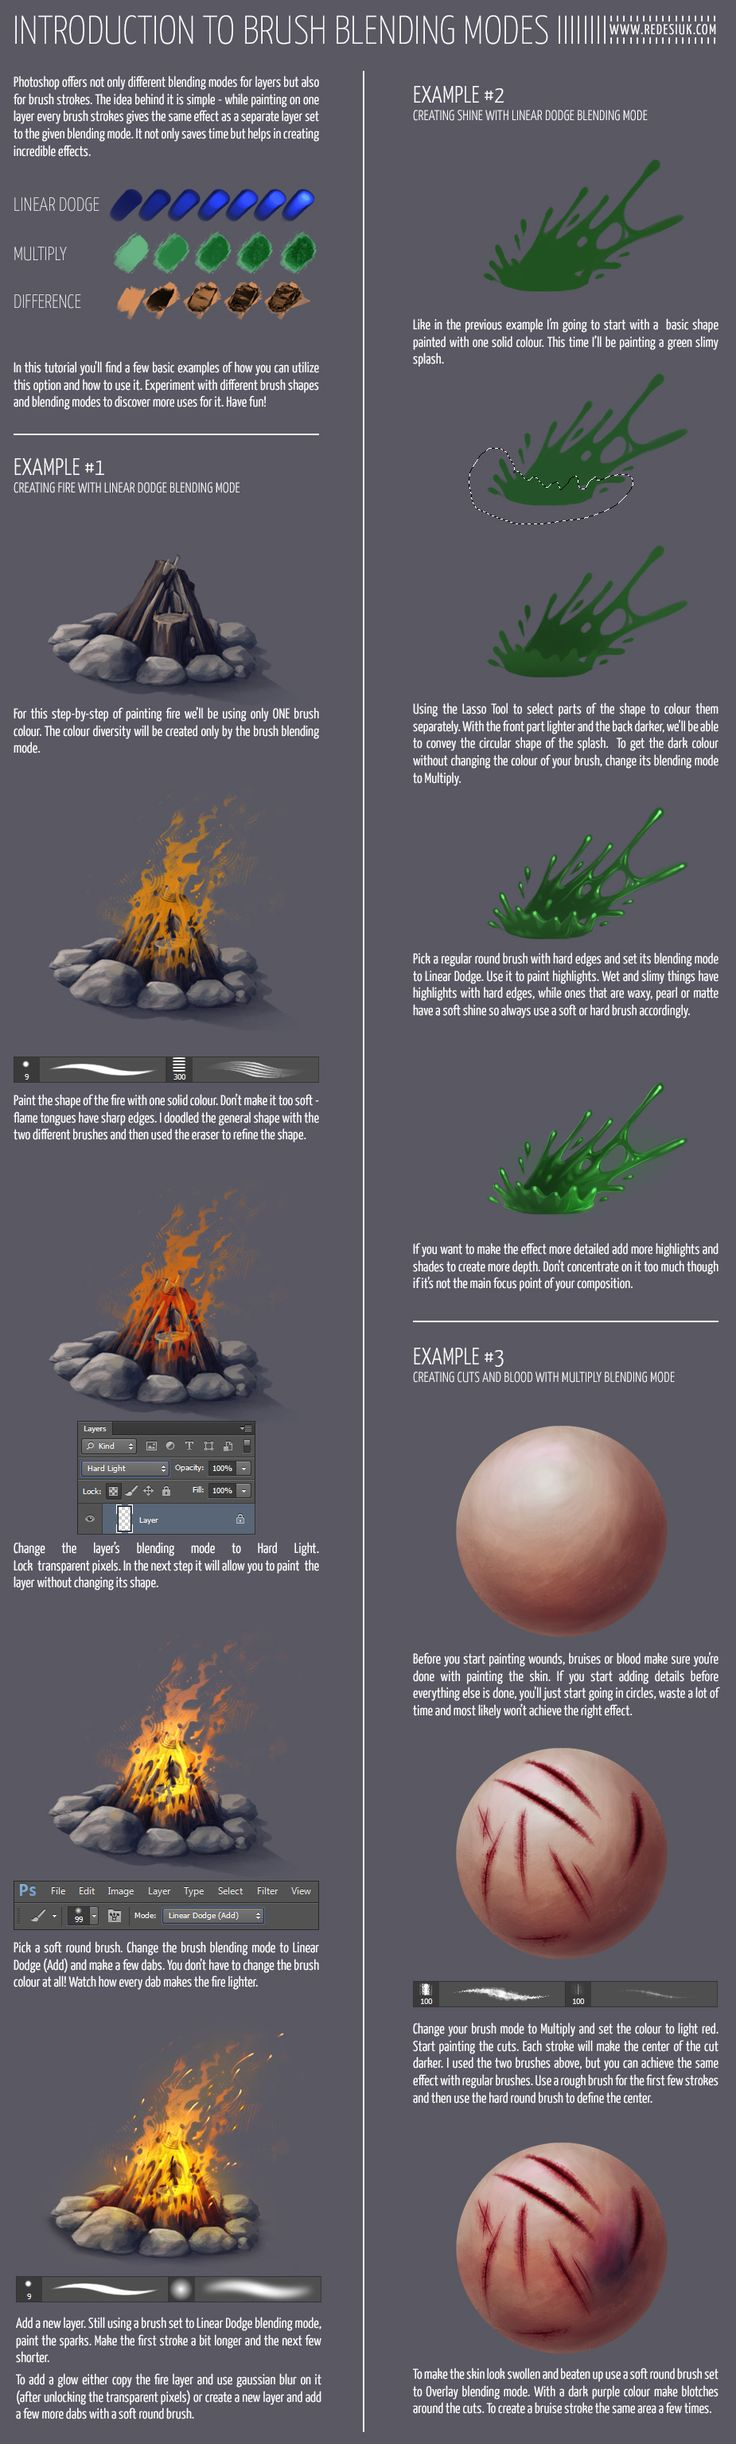 Brush blending modes - tutorial by vesner on deviantART via PinCG.com